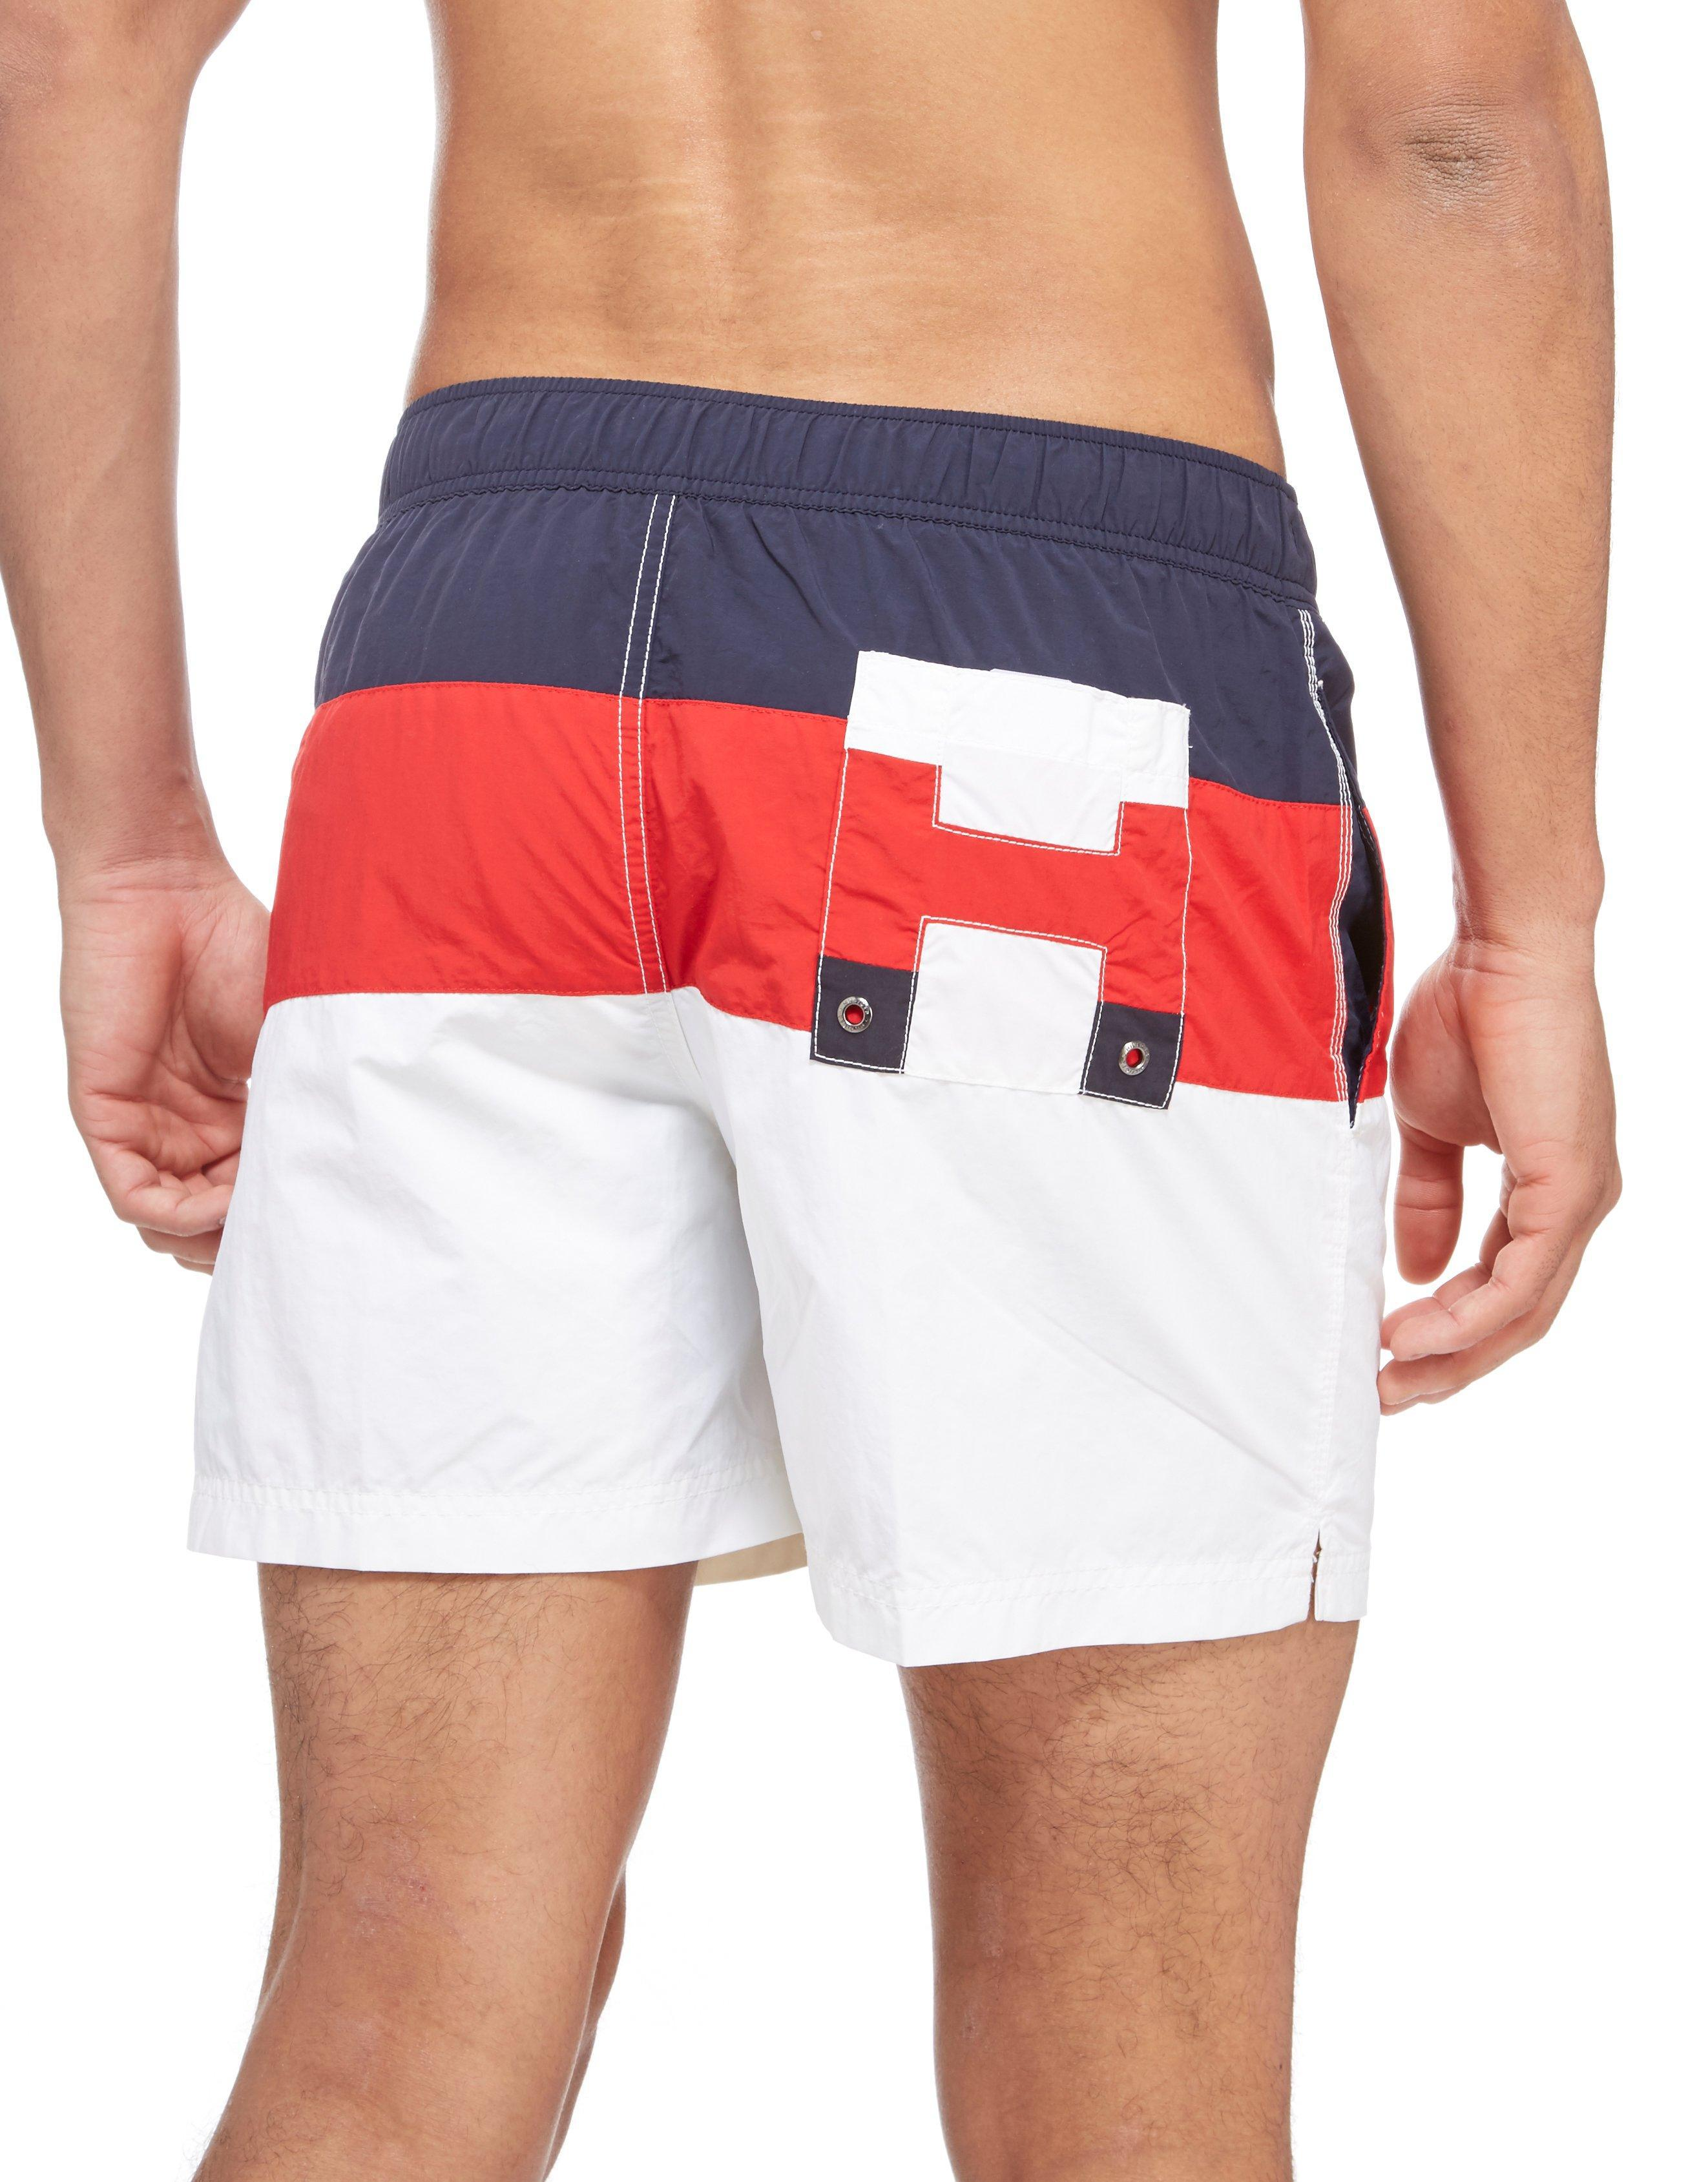 Colour-Blocked Logo Shorts - Sales Up to -50% Tommy Hilfiger aq5X7tJI